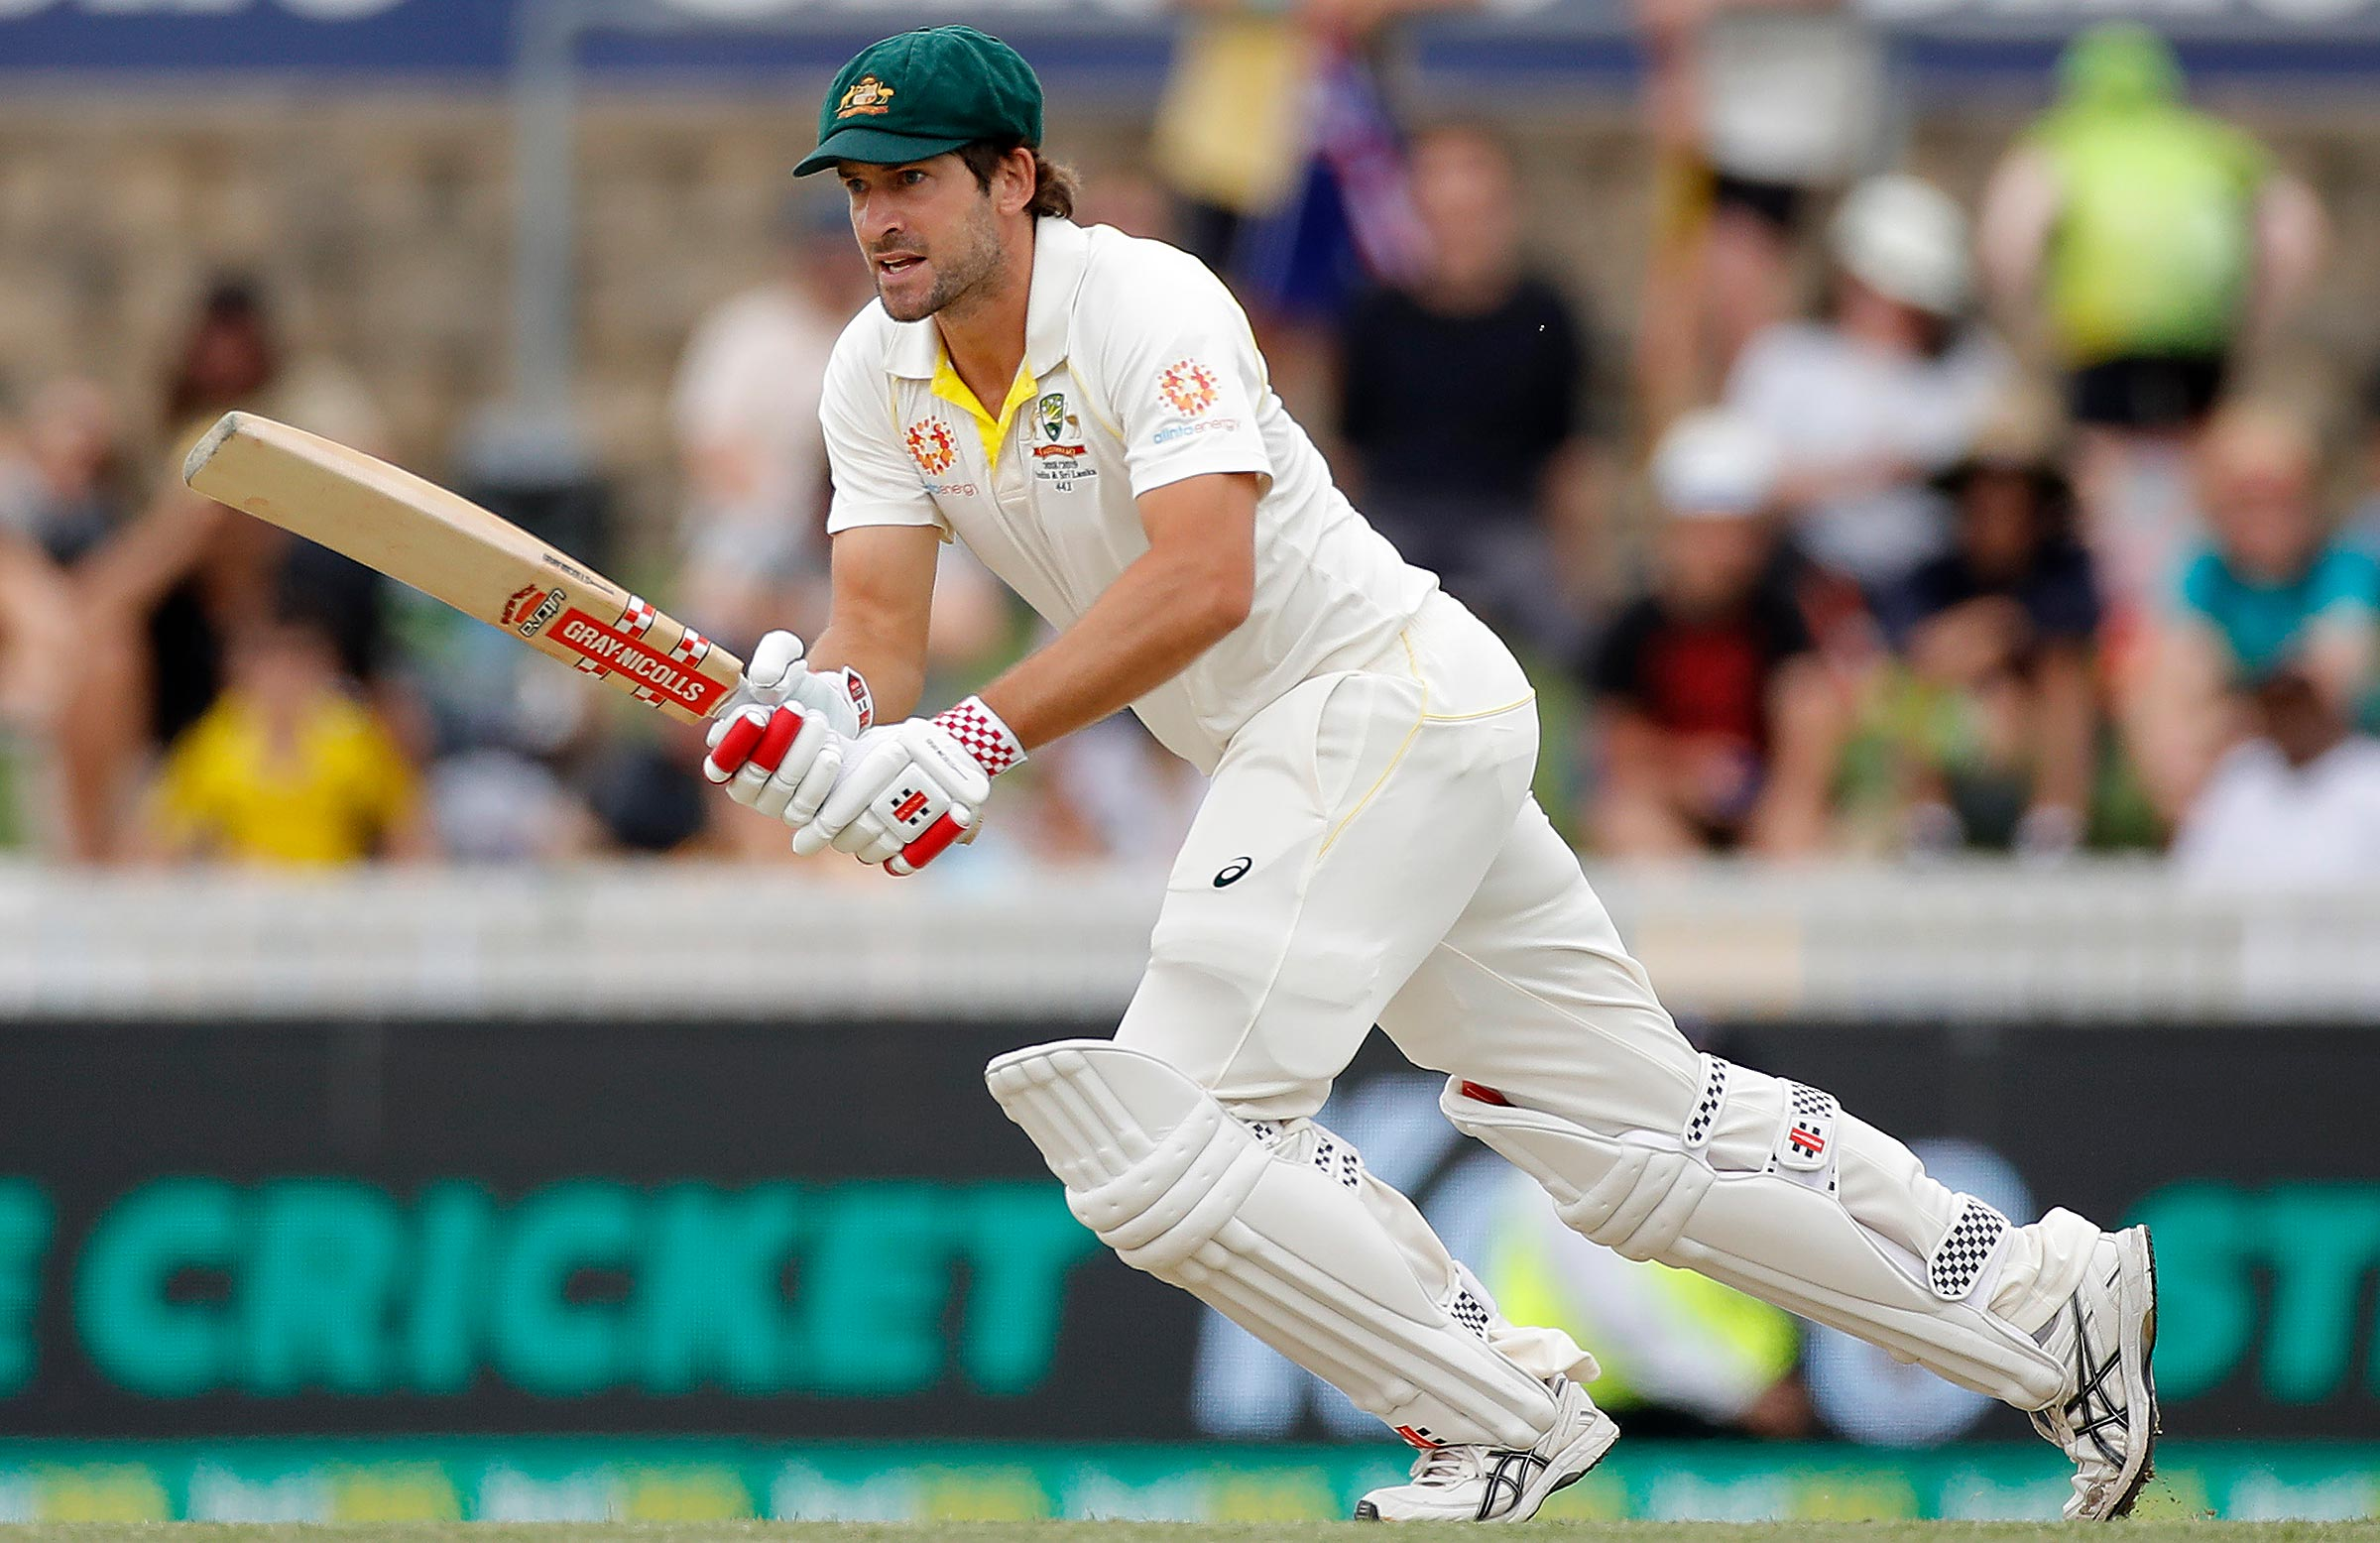 Burns during his career-best score in Canberra // Getty